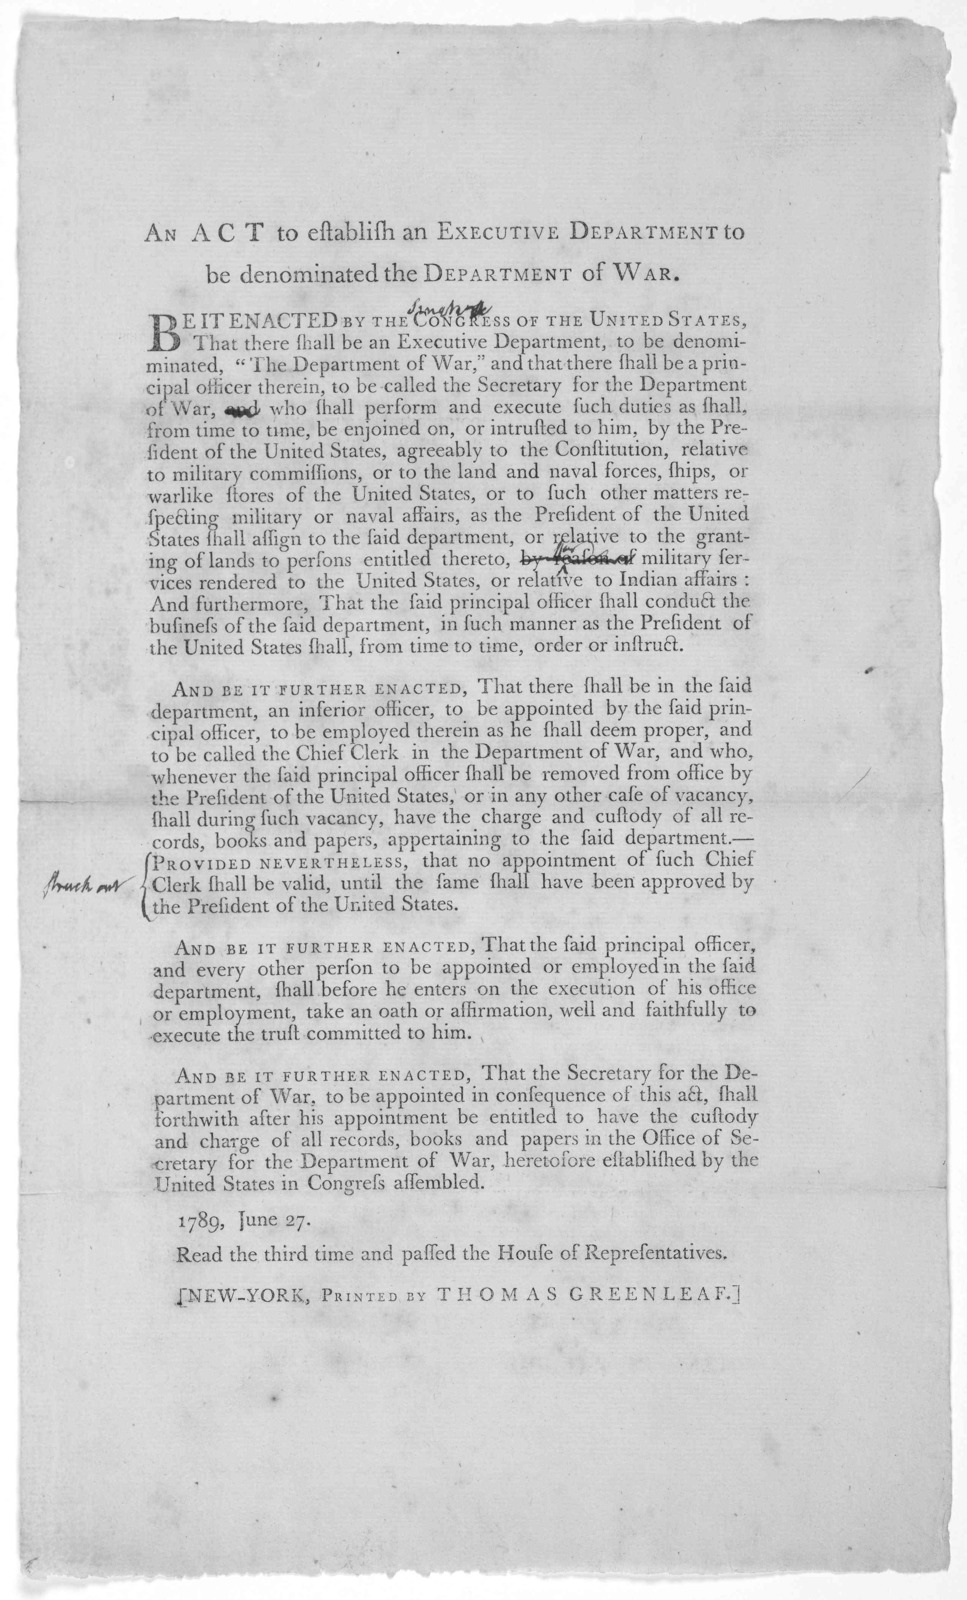 An act to establish an Executive department to be denominated the Department of war. [Dated] 1789, June 27. New York, Printed by Thomas Greenleaf. [1789].